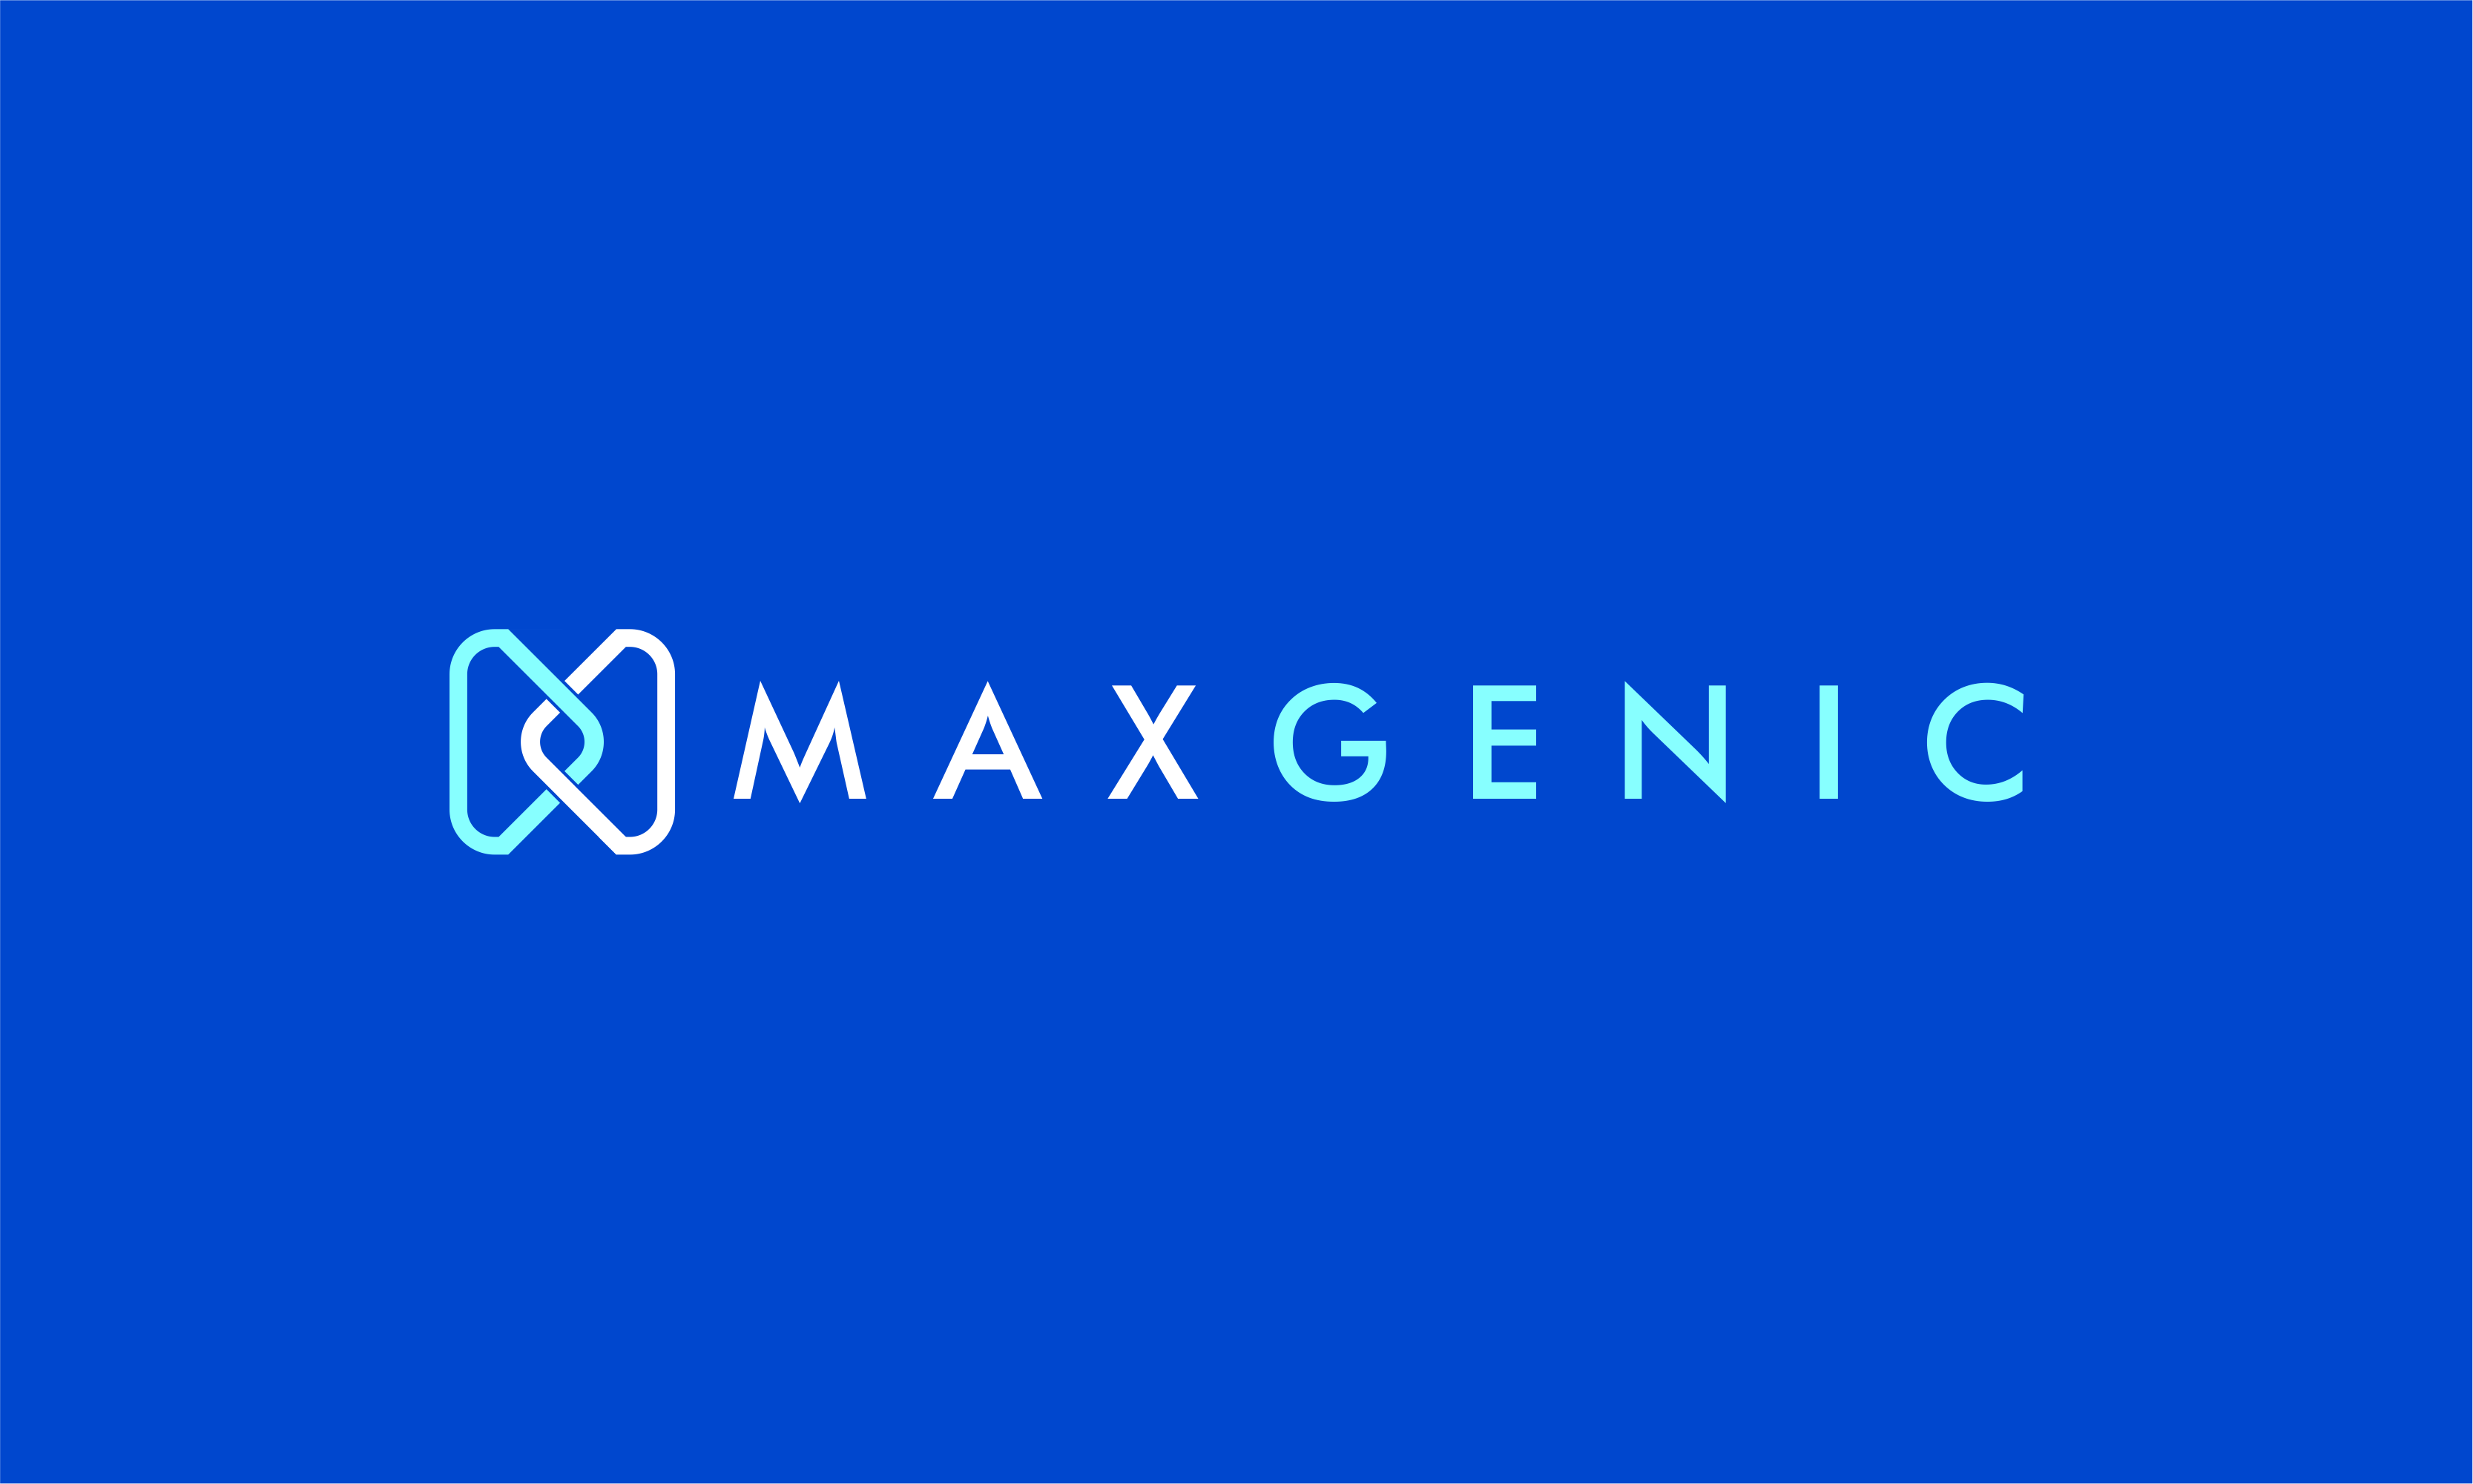 Maxgenic - Brandable product name for sale